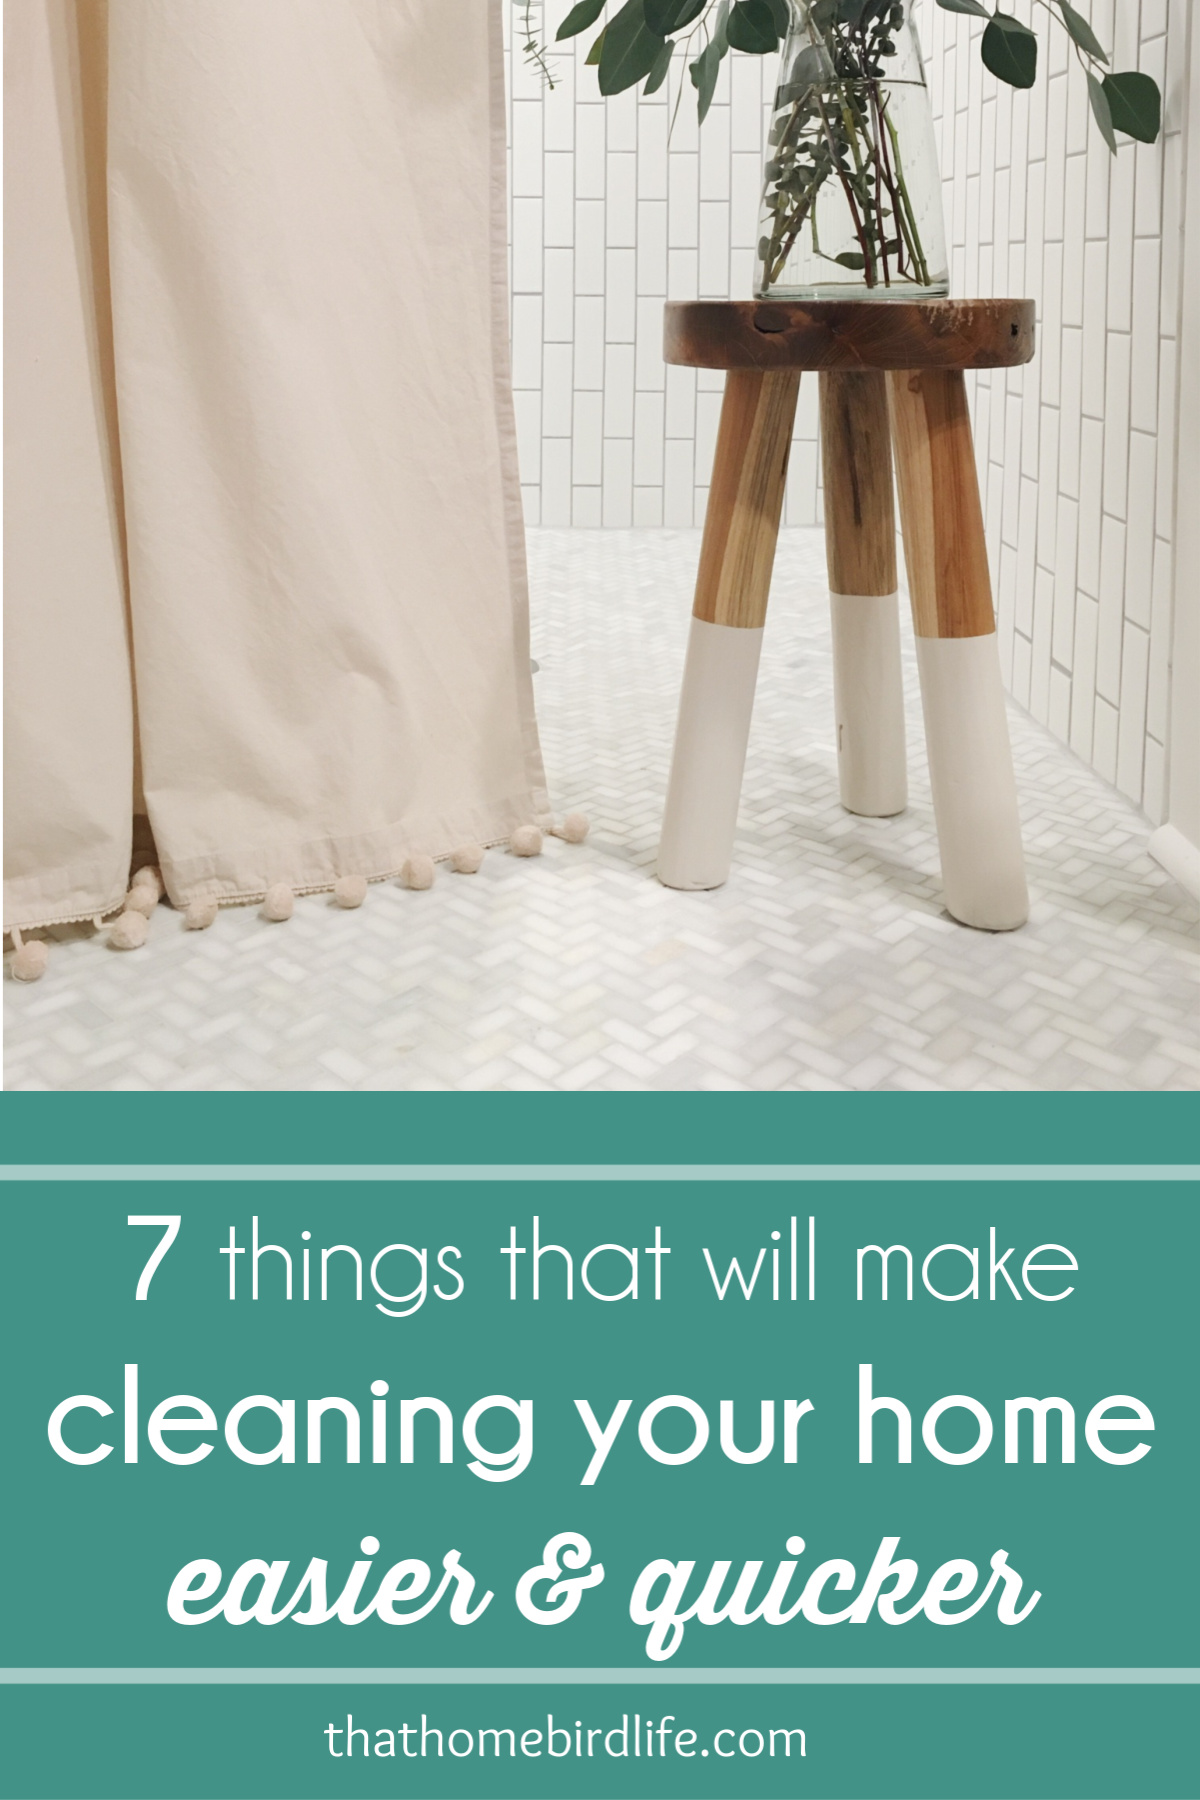 bathroom with text overlay '7 things that will make cleaning your home quicker and easier'